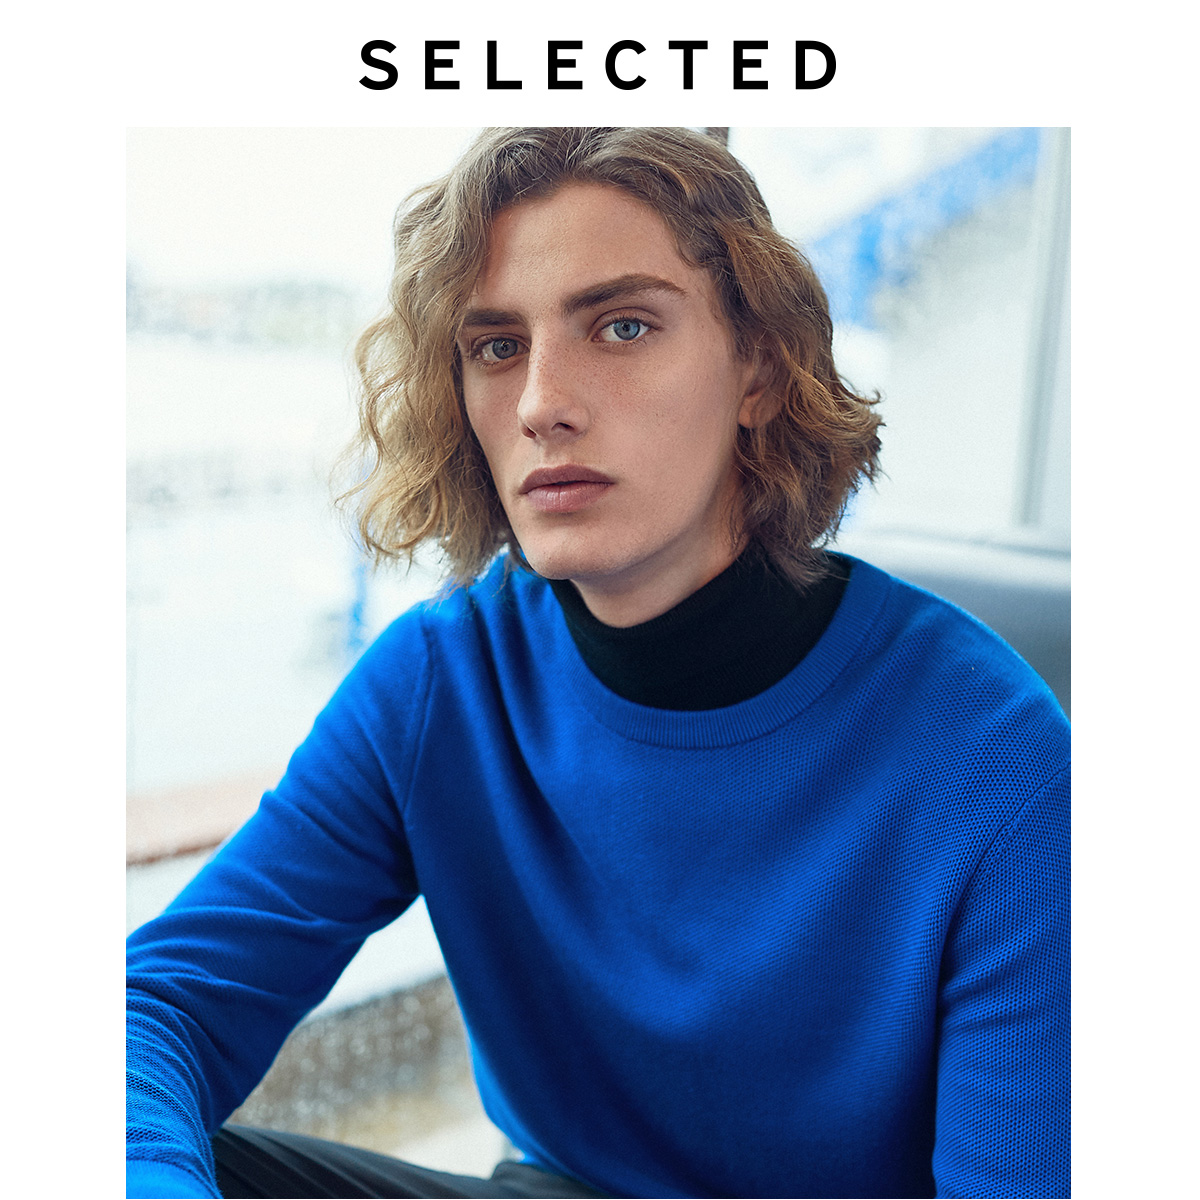 SELECTED Autumn Long-sleeved Men Round-collar Leisure Knitted Shirt S | 419324516